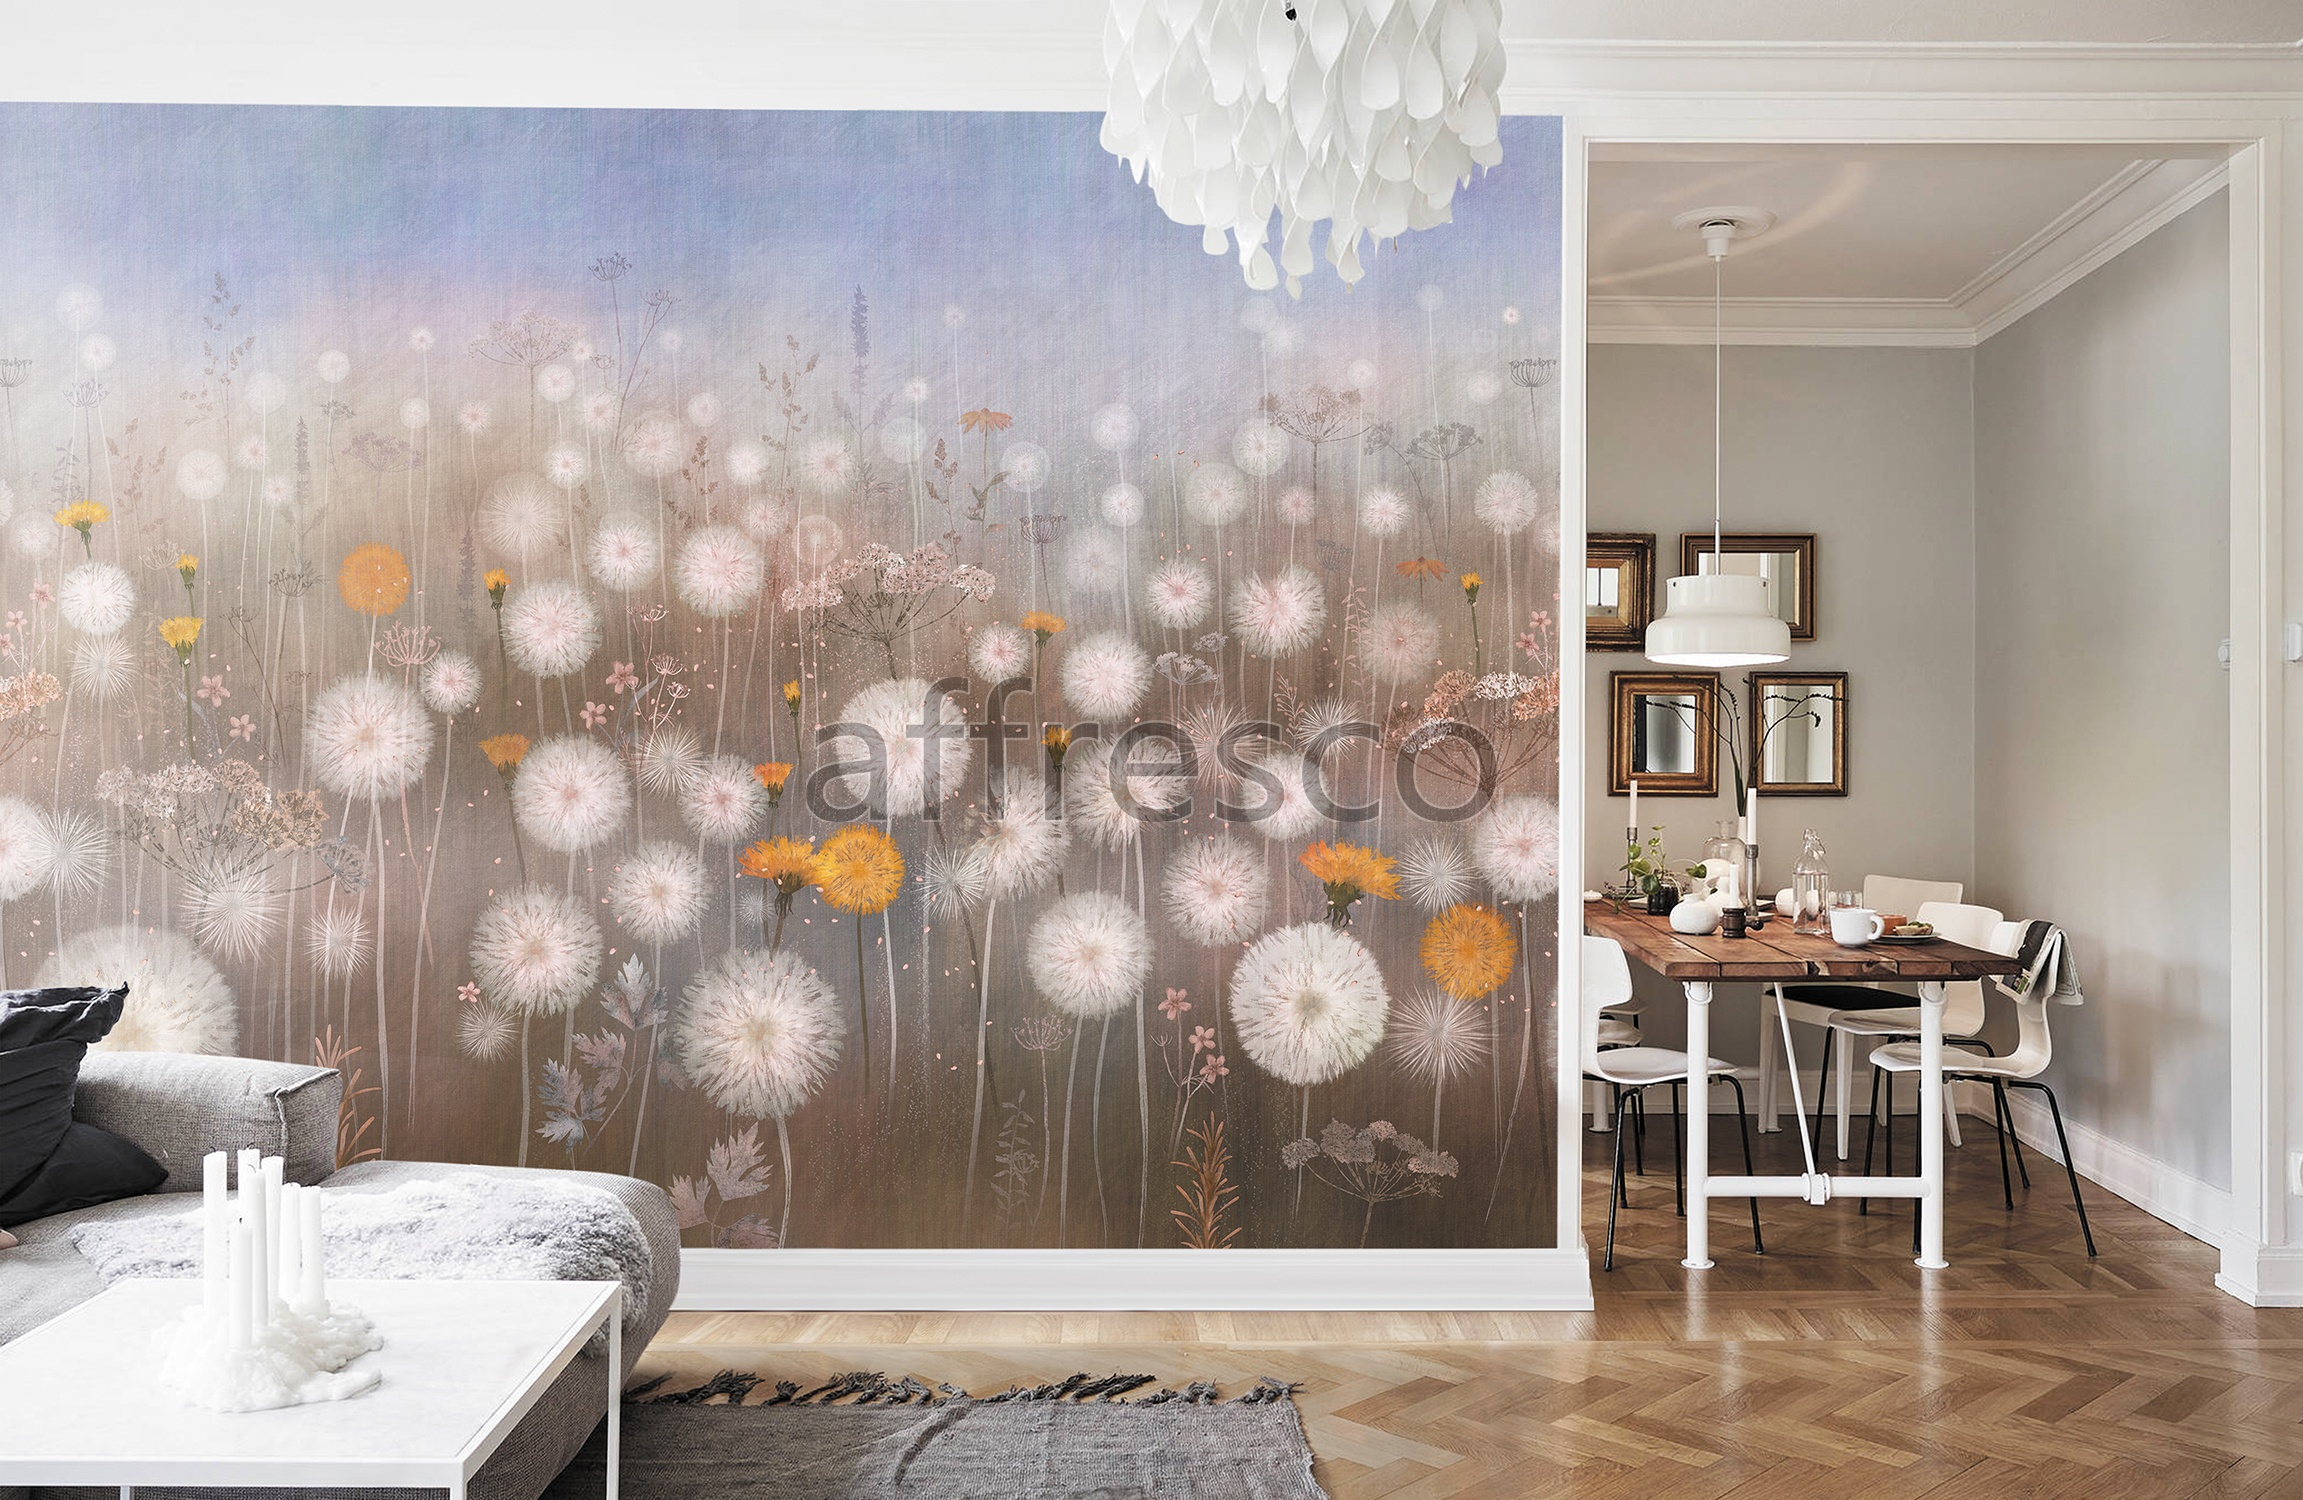 Handmade wallpaper, Handmade wallpaper | Dandelion